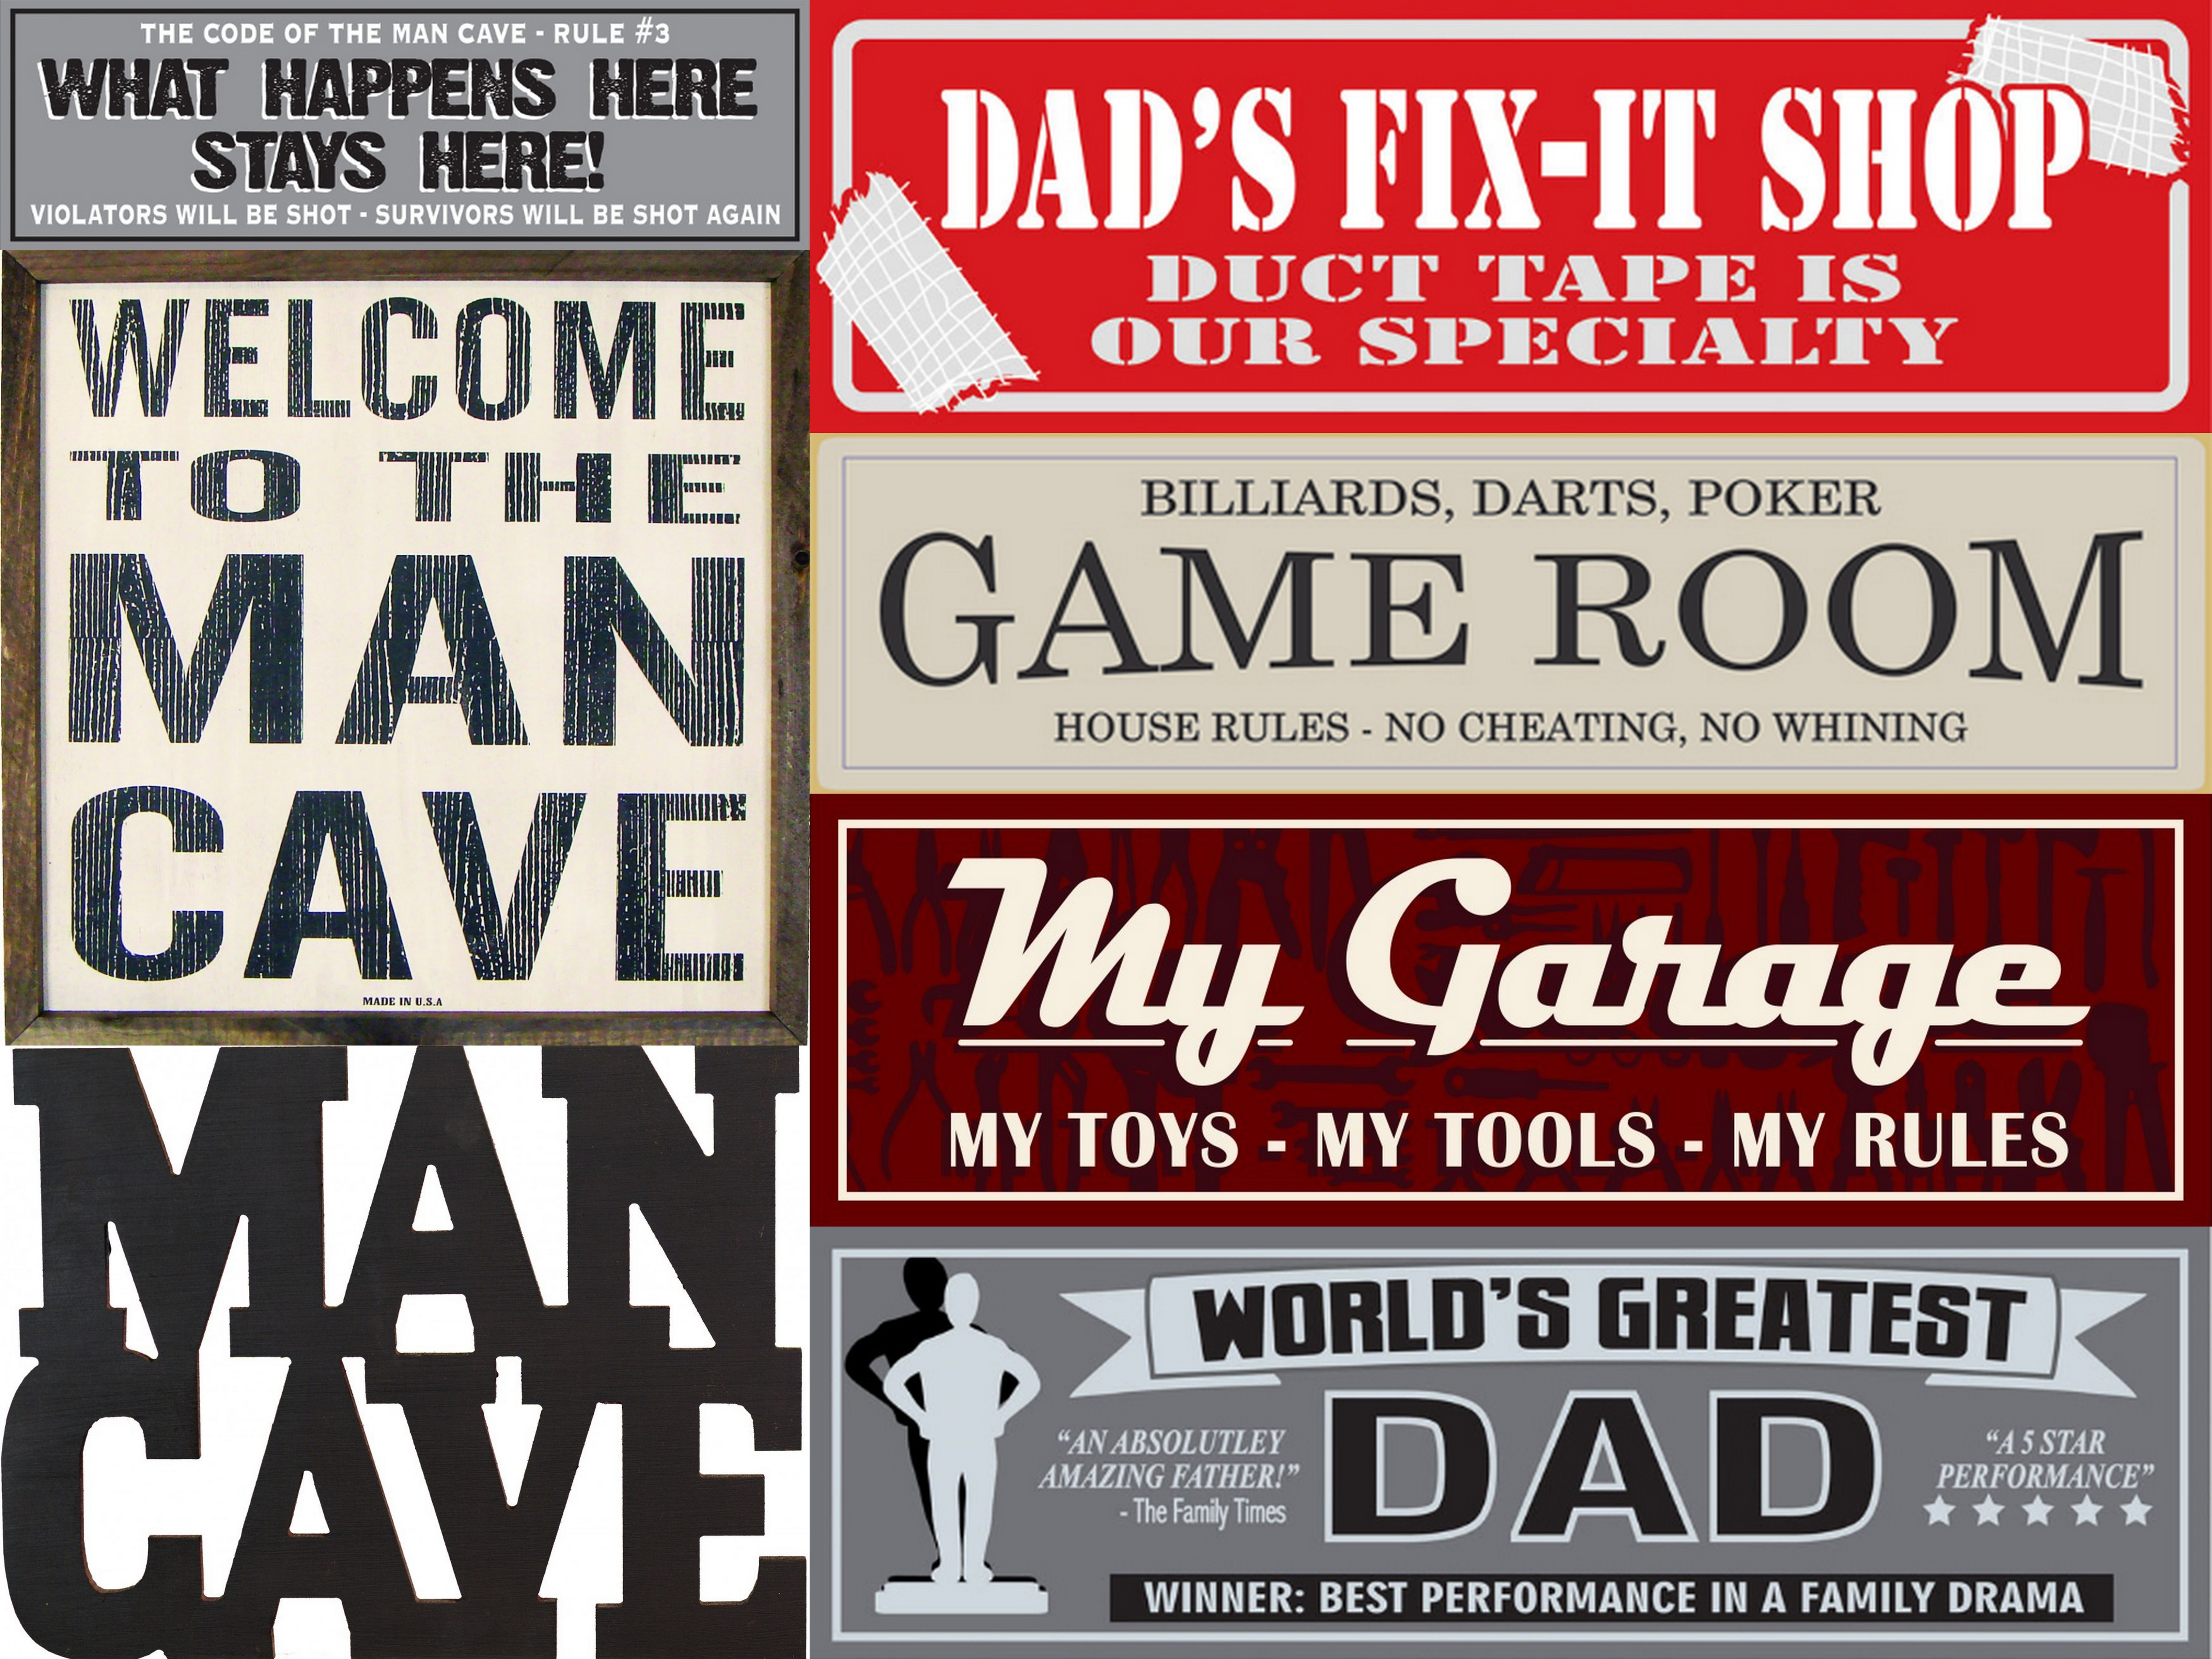 Man Cave Rules Signs : Lrt metal decor more signs indoor outdoor ncaa chevy man cave home